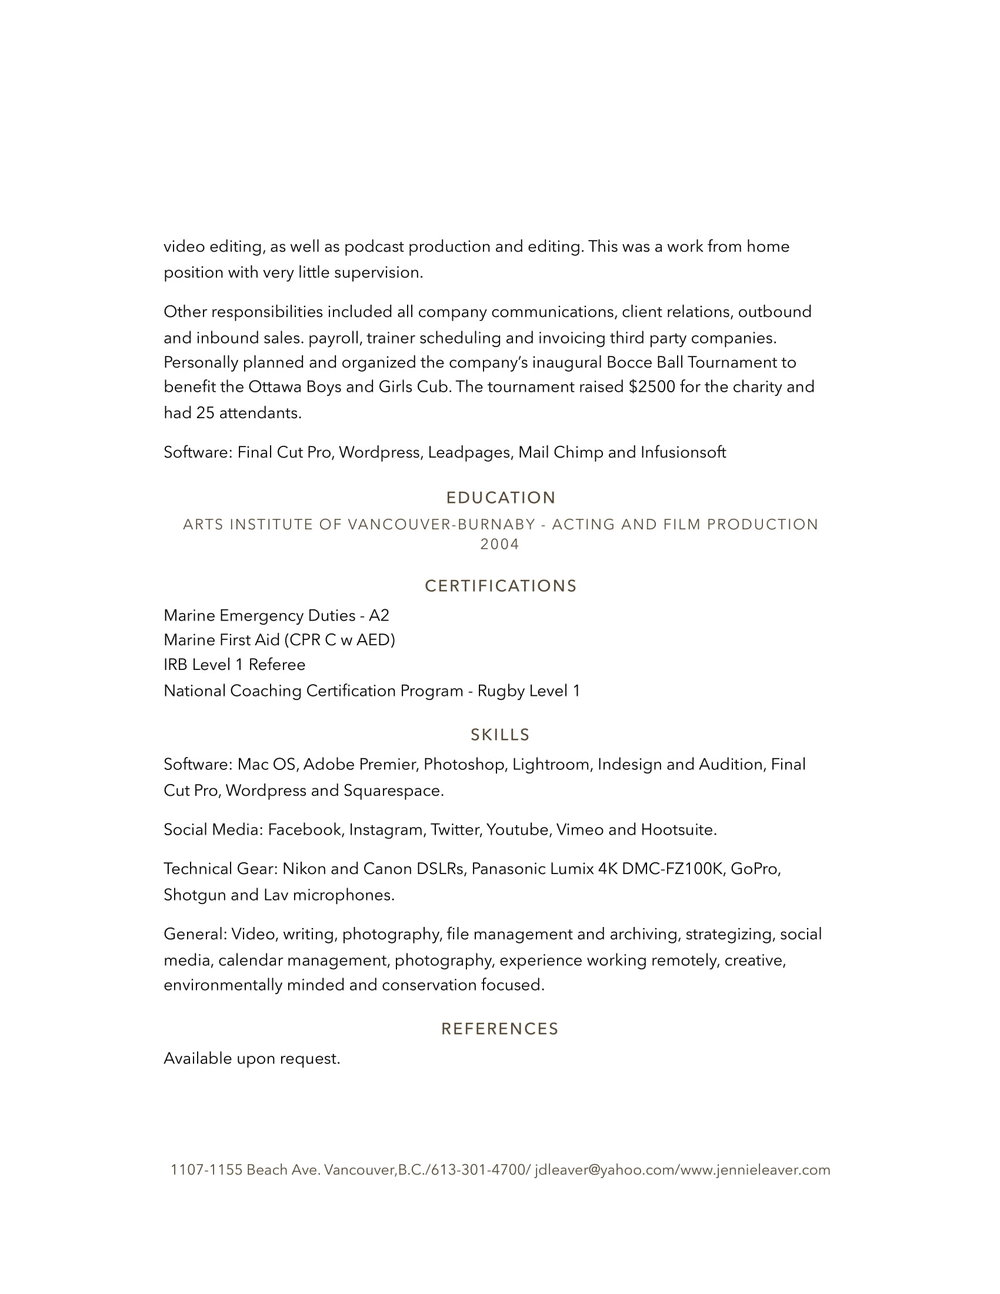 Resume/CV — Jennie Leaver